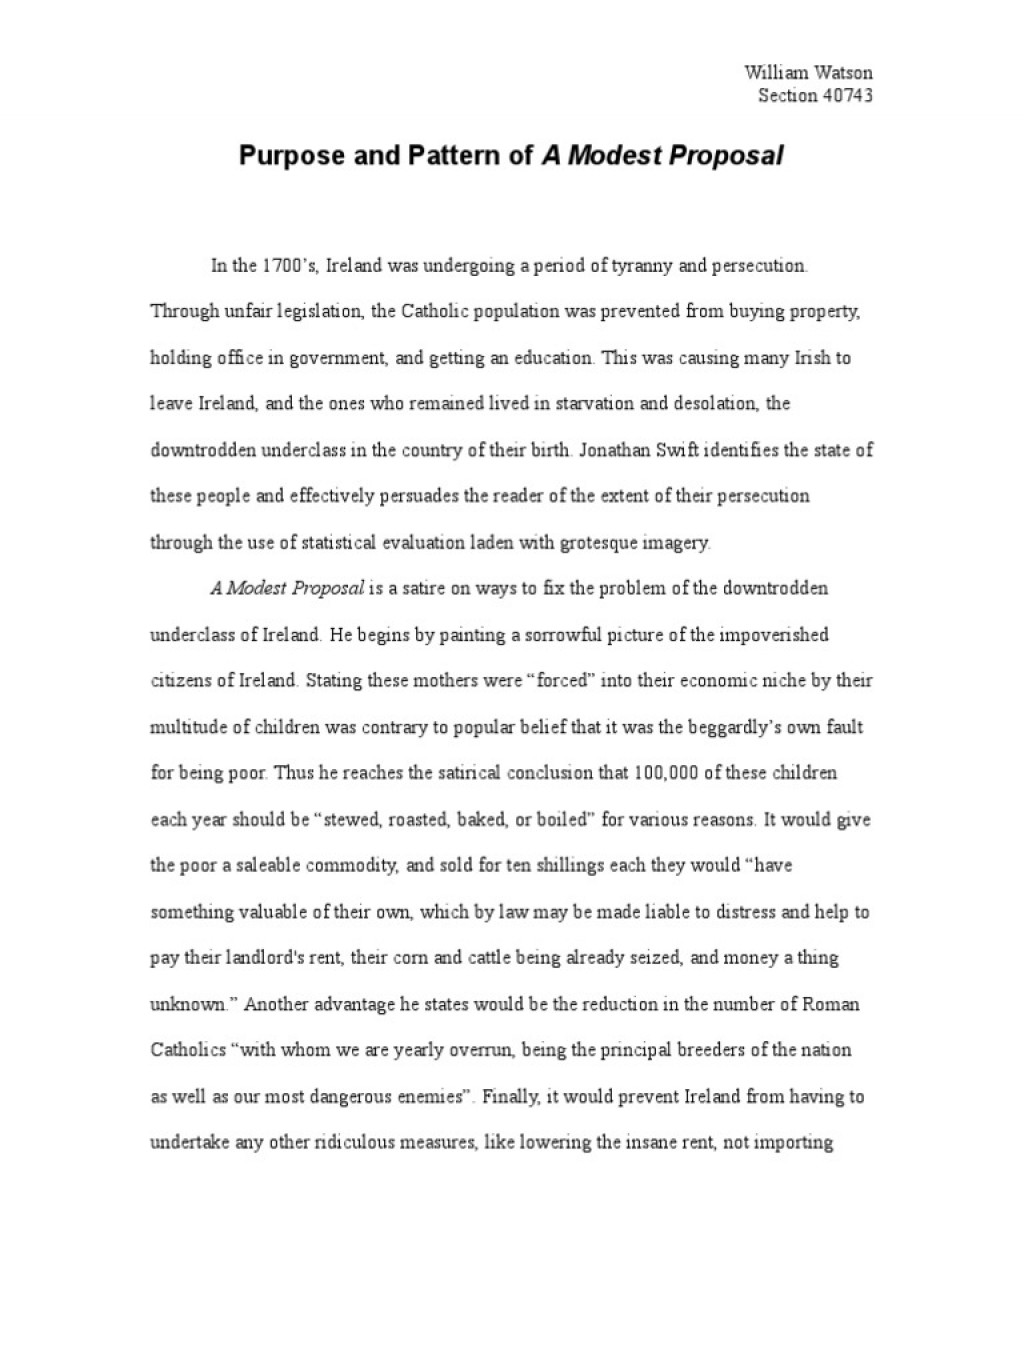 029 Satirical Essay Topics Example Worksheet Modest Proposal Answers Grass Frightening Good Topic Ideas Large